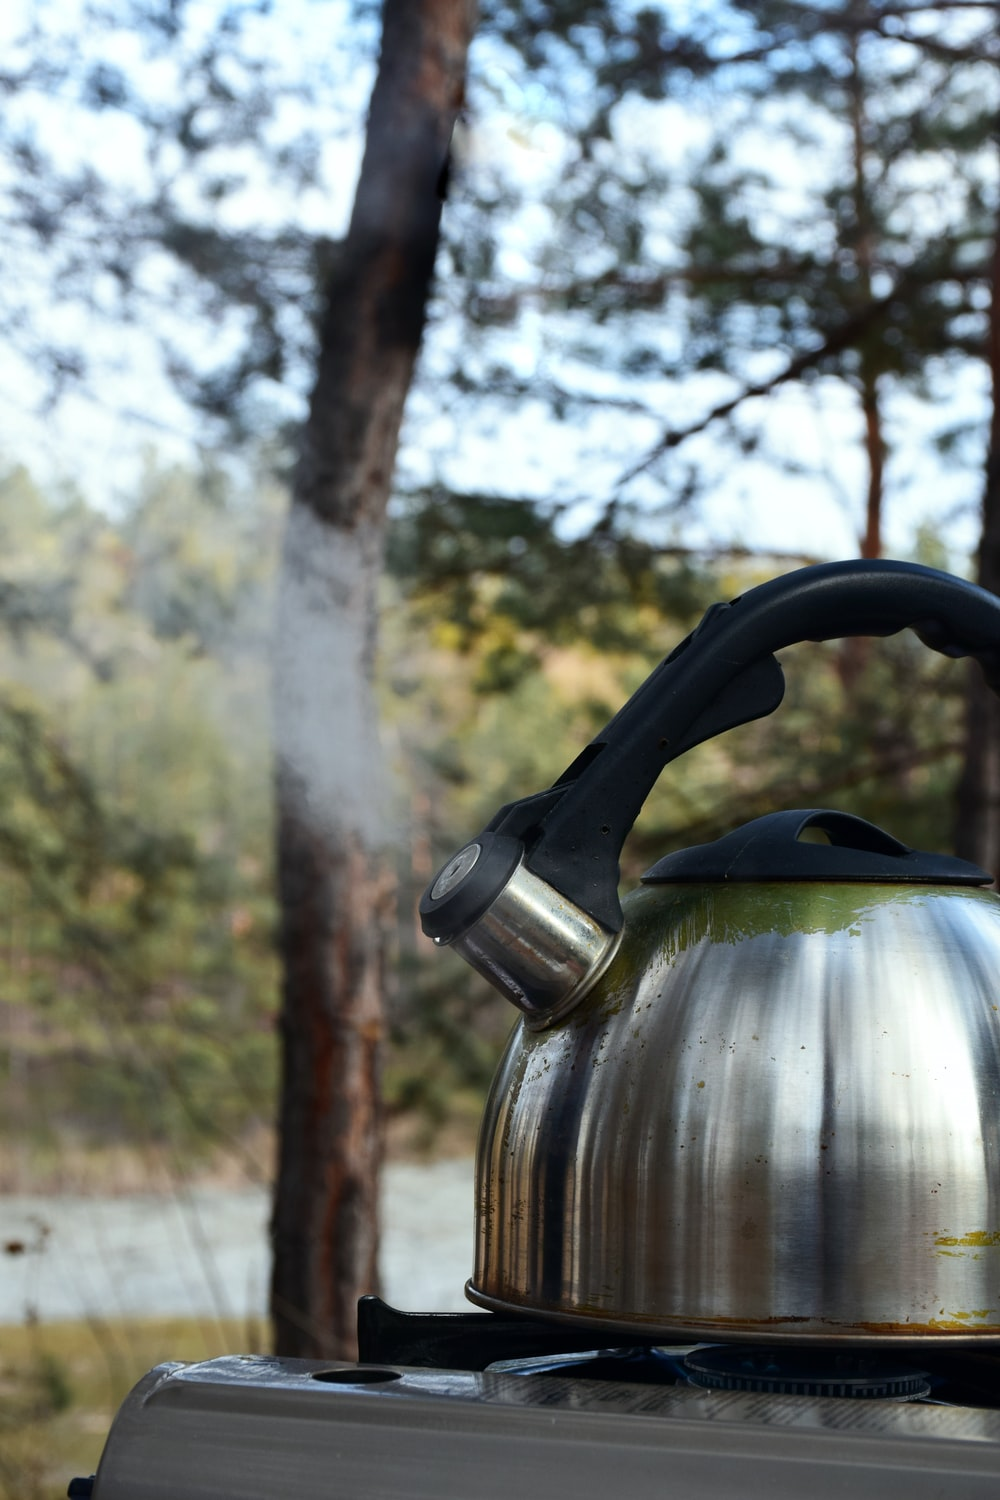 Boiling water in camping kettle